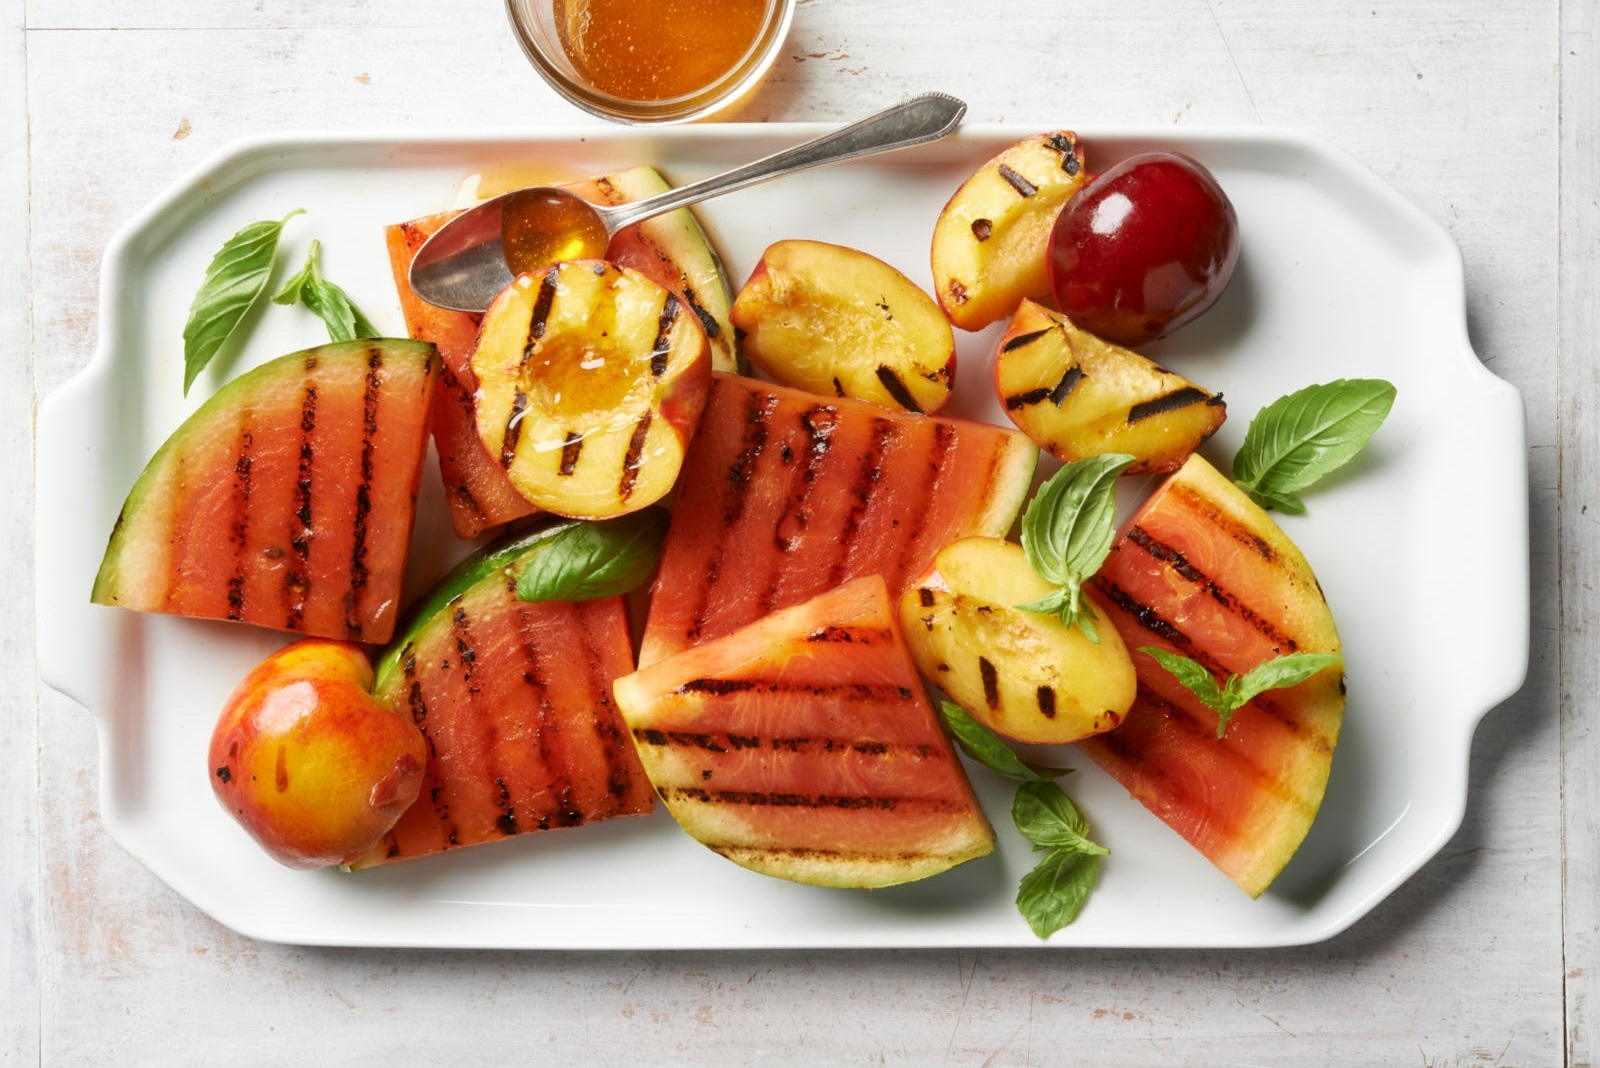 platter of grilled peaches and watermelon garnished with honey and fresh basil leaves